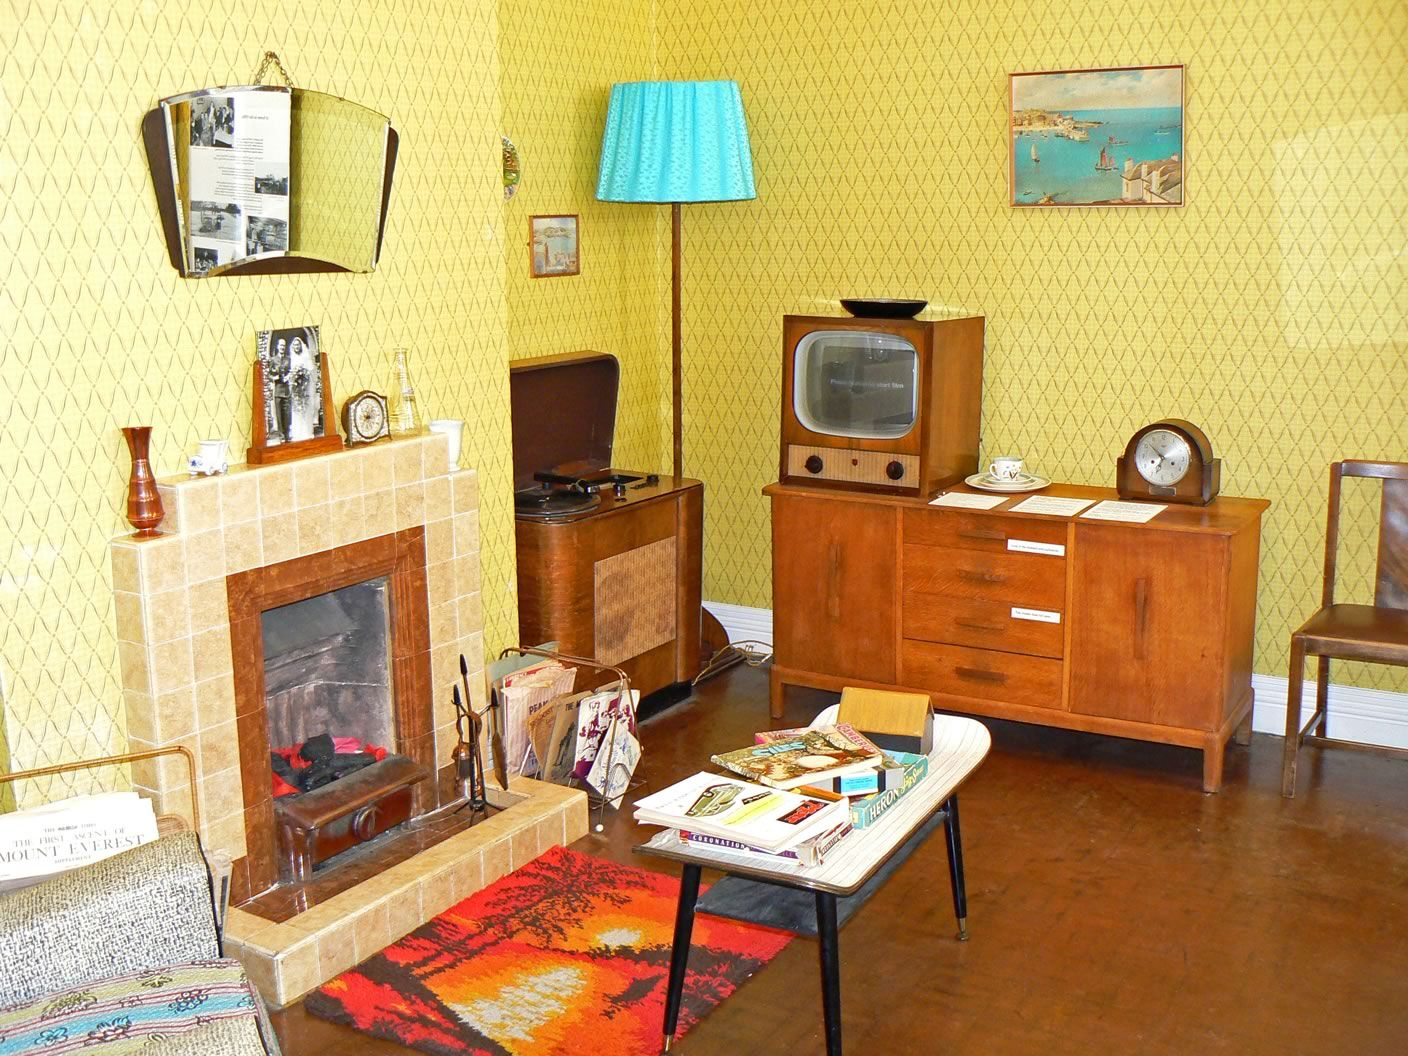 Living Room 1950s 1950s room at the museum of lynn life in king's lynn, norfolk. the